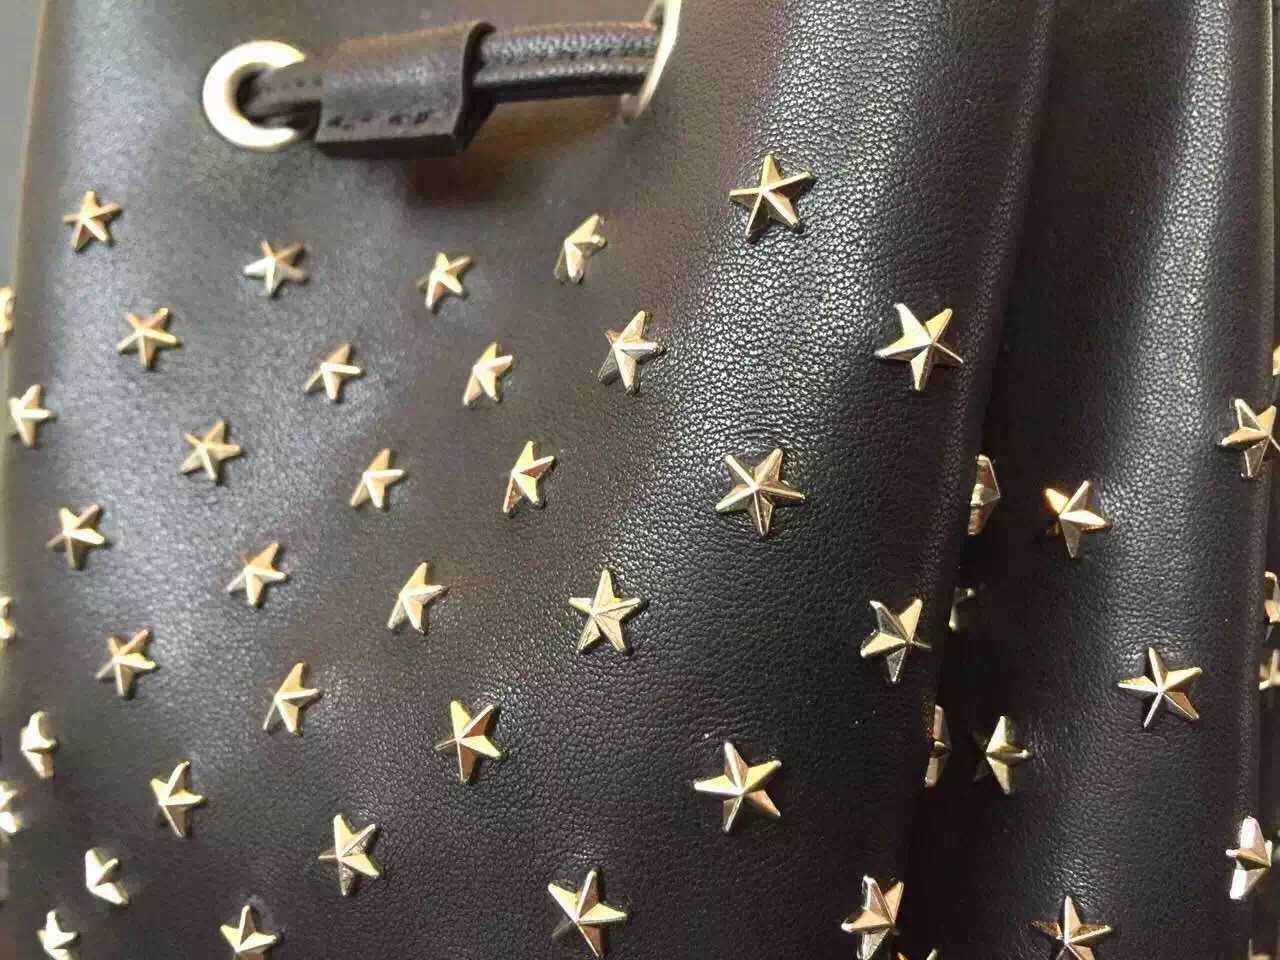 Limited Edition!2016 New Saint Laurent Bag Cheap Sale-Saint Laurent Small Emmanuelle Bucket Bag in Black Leather with Stars